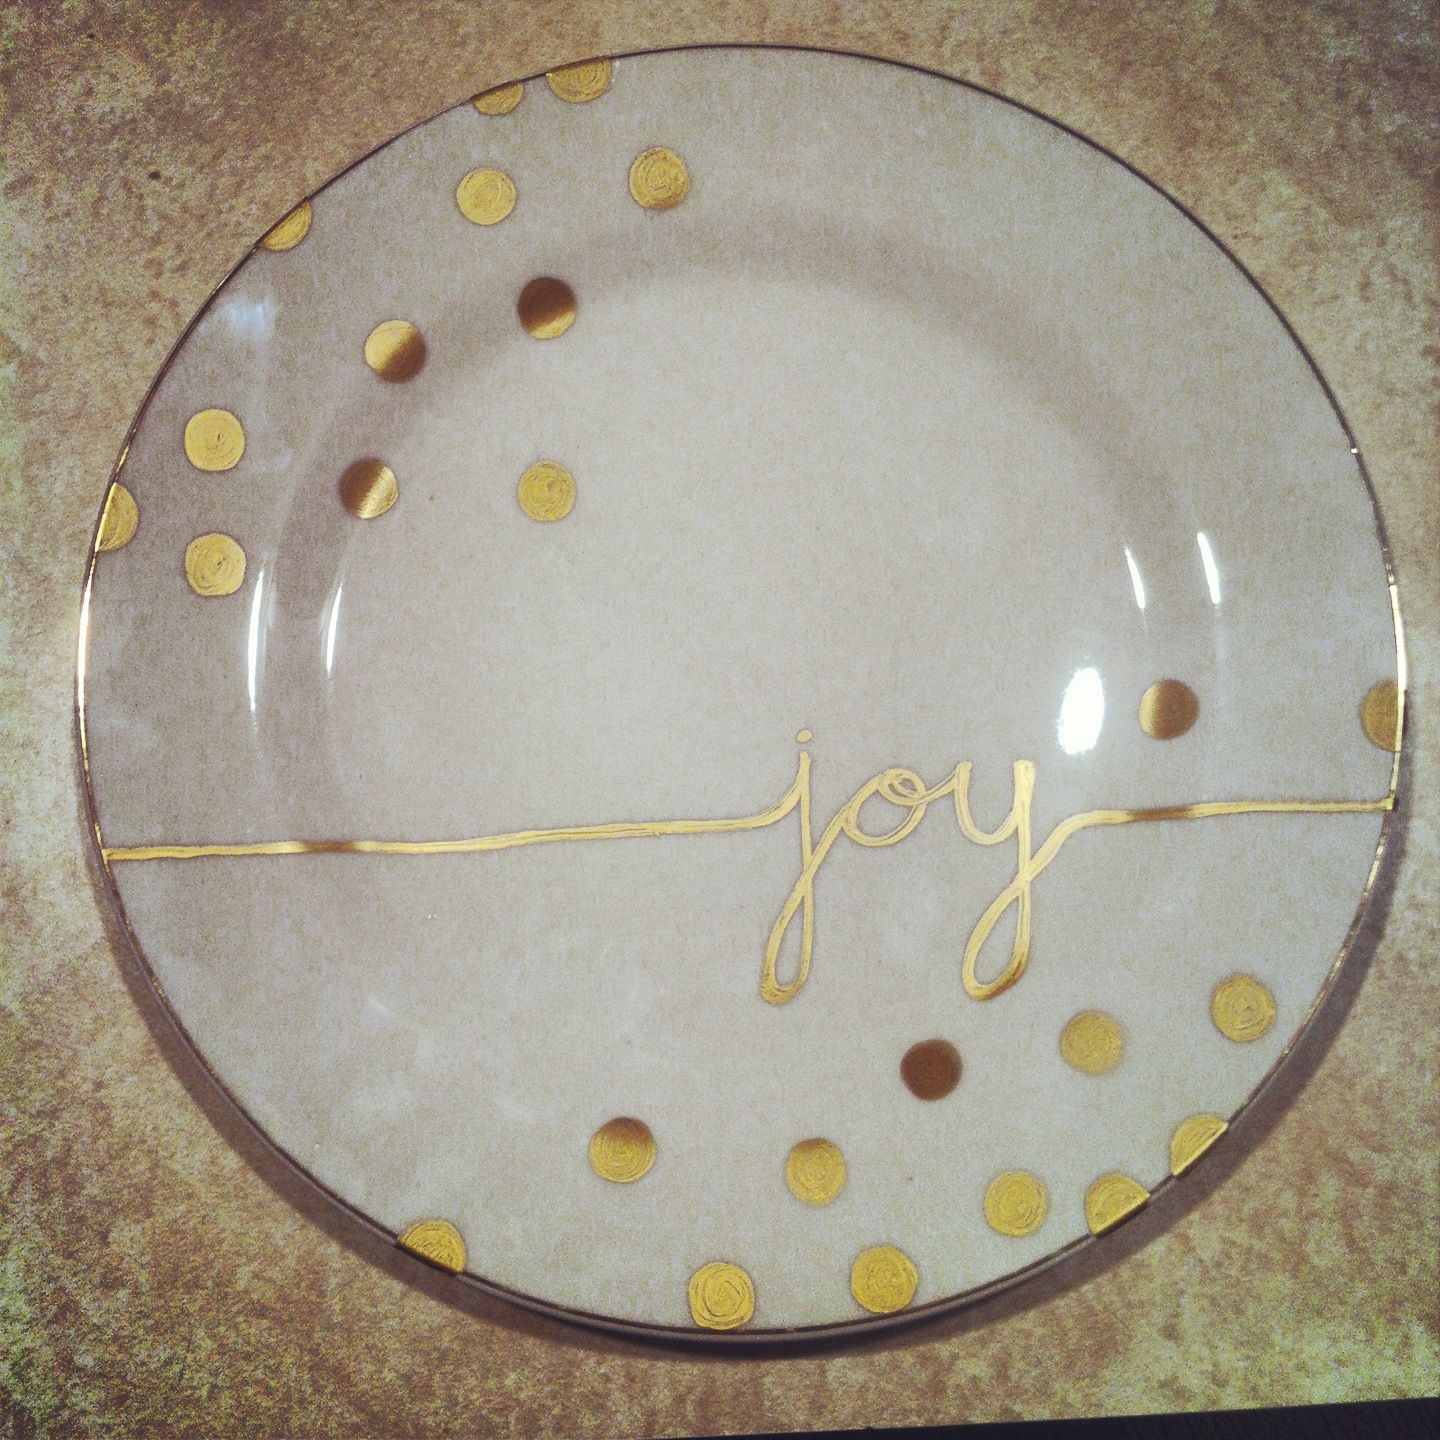 Kate Spade Inspired Diy Holiday Plate Dollar Store Plate